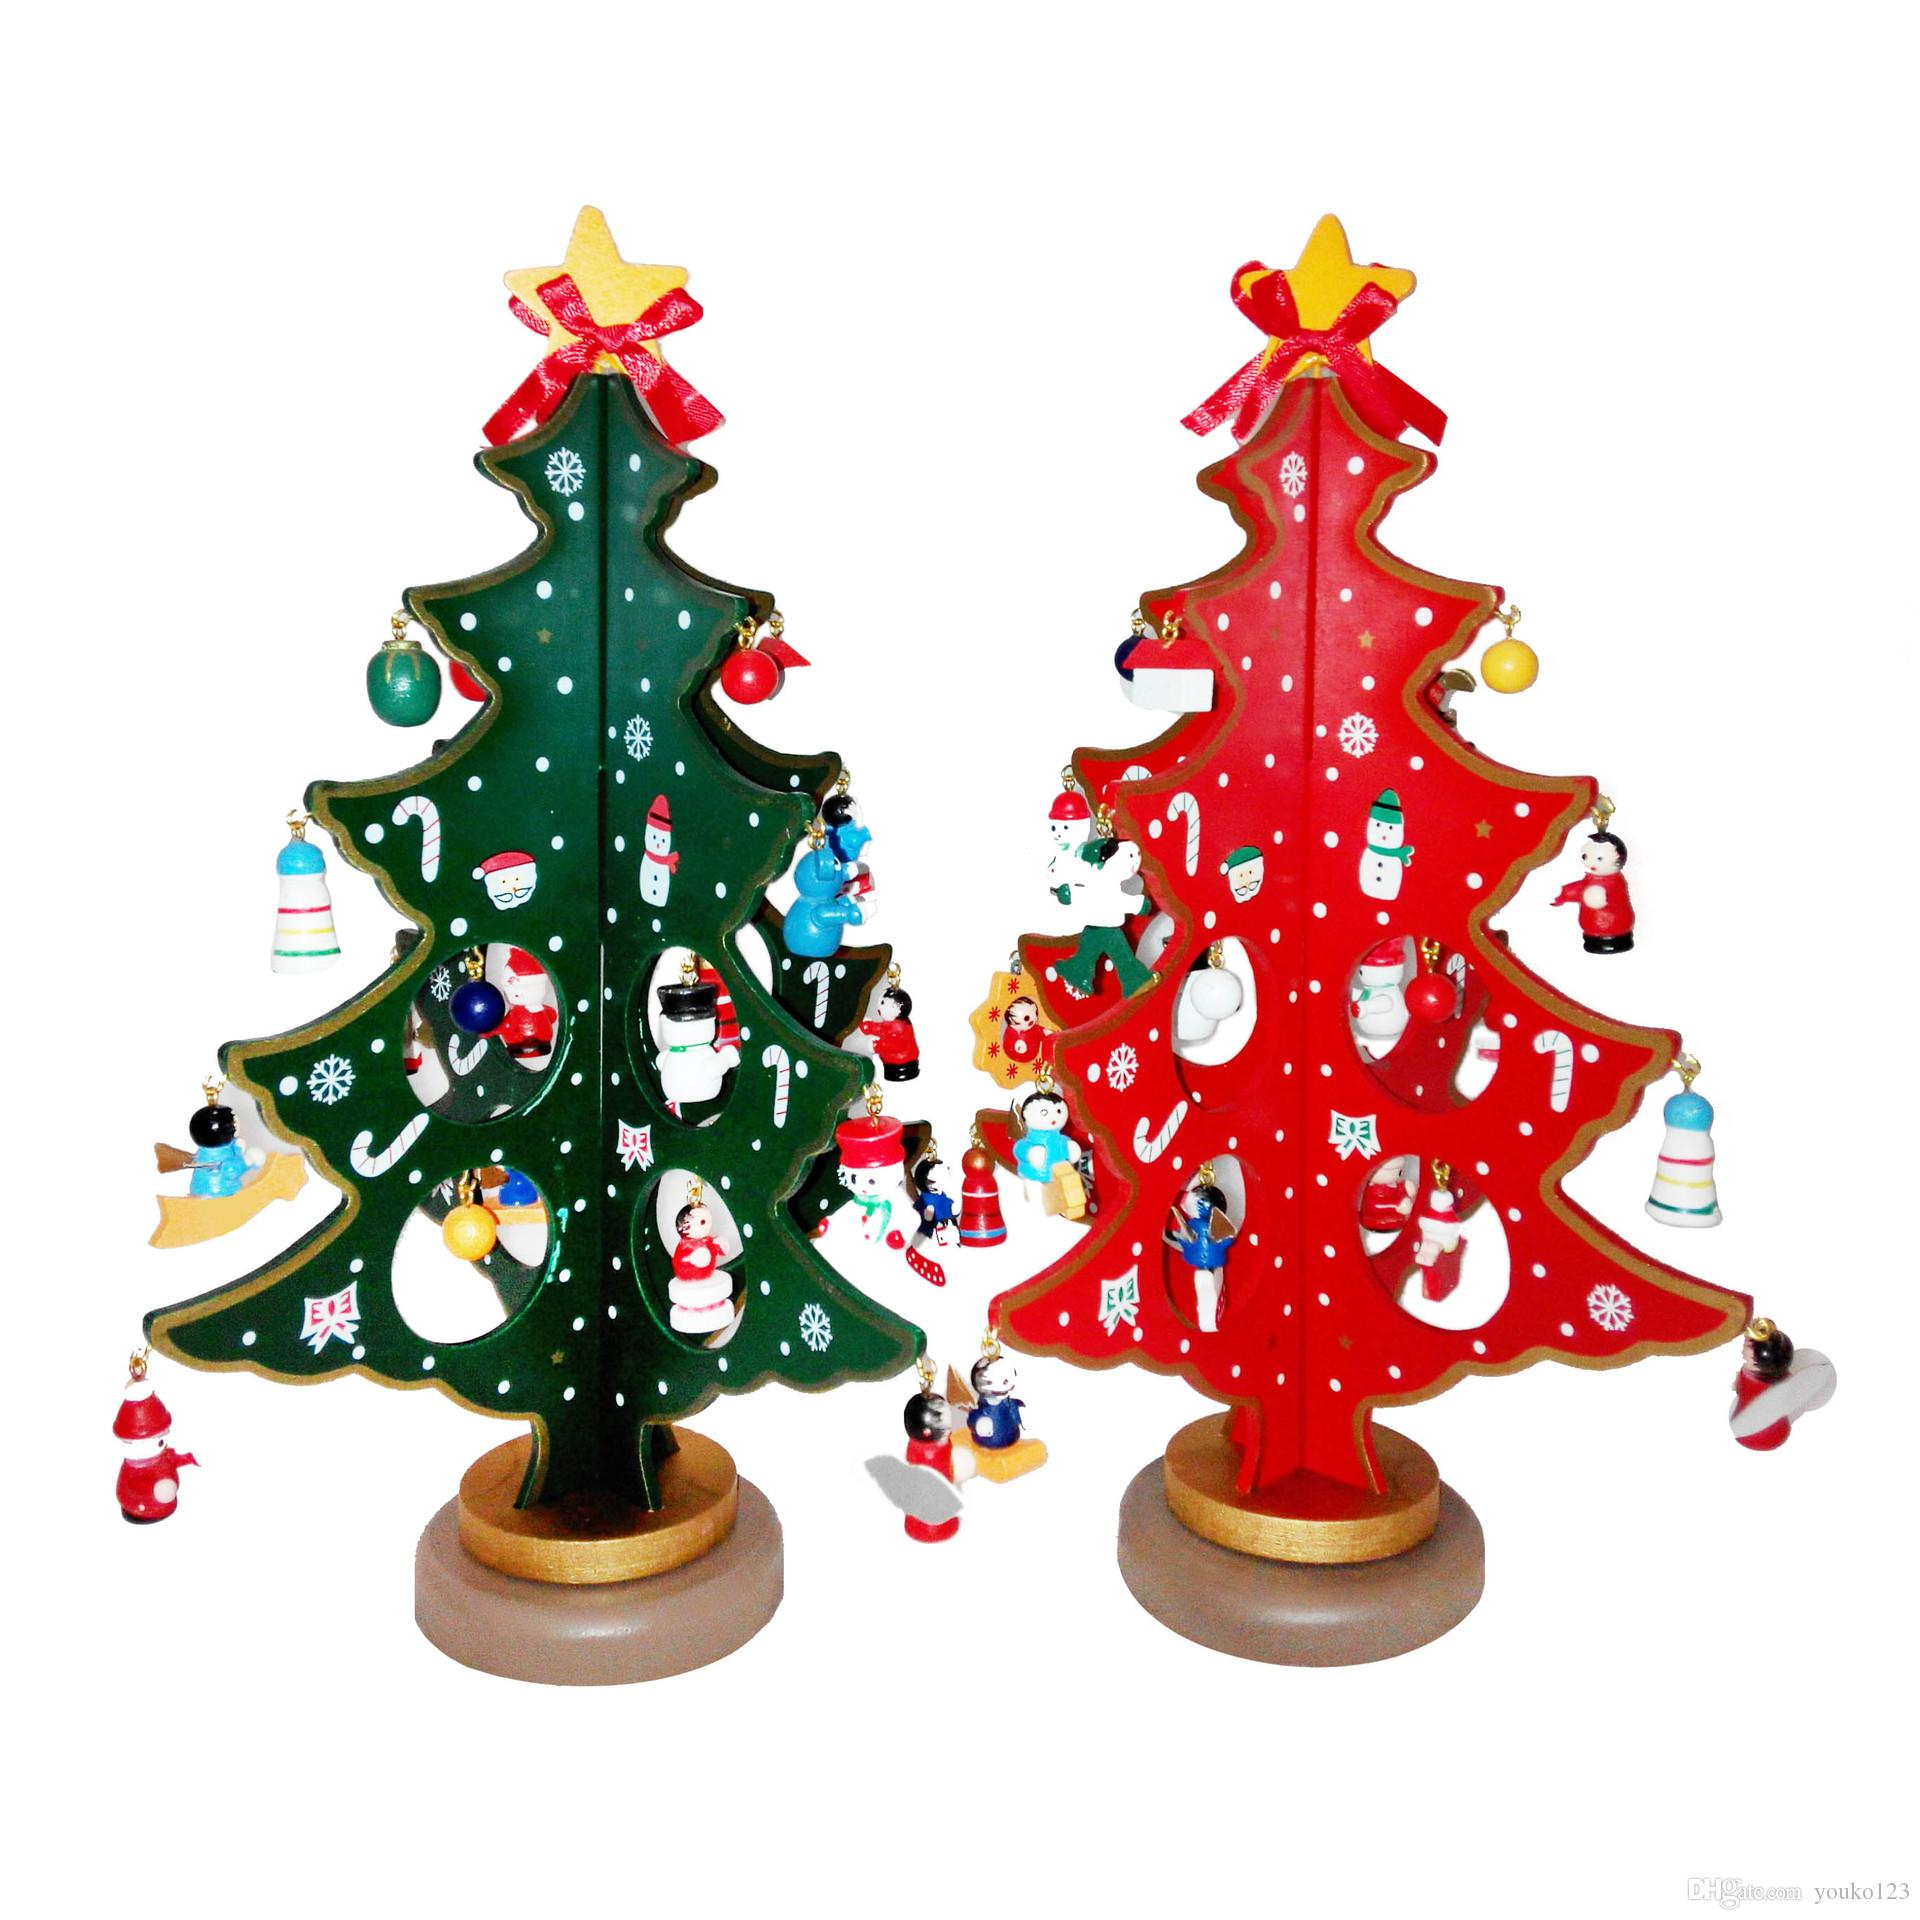 creative christmas ornaments festive gifts handmade wooden christmas tree desktop decoration diy manual assembly gift box buying christmas decorations cheap